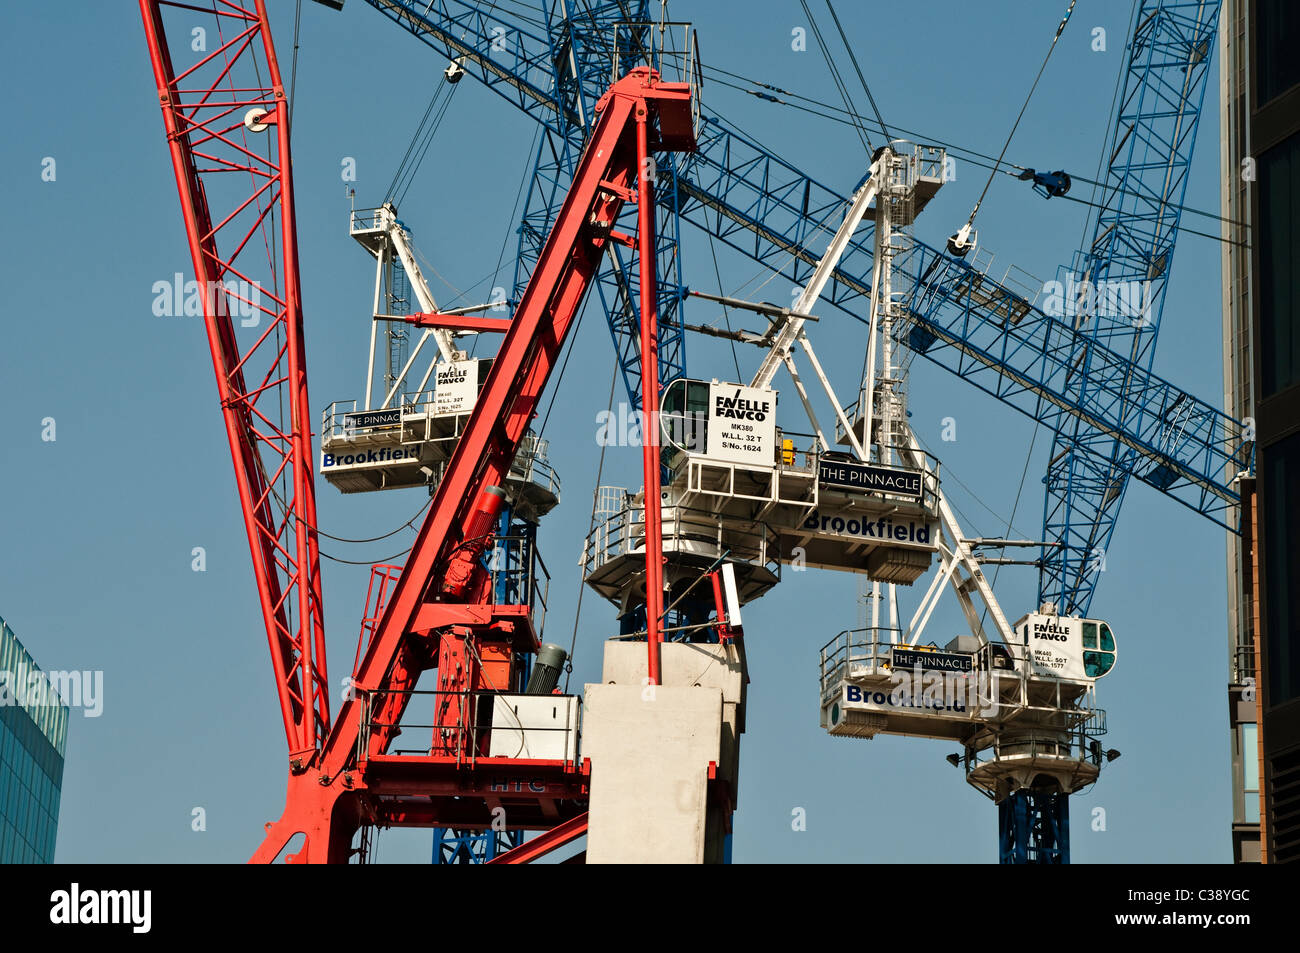 Cranes at The Pinnacle building site, City of London, UK - Stock Image